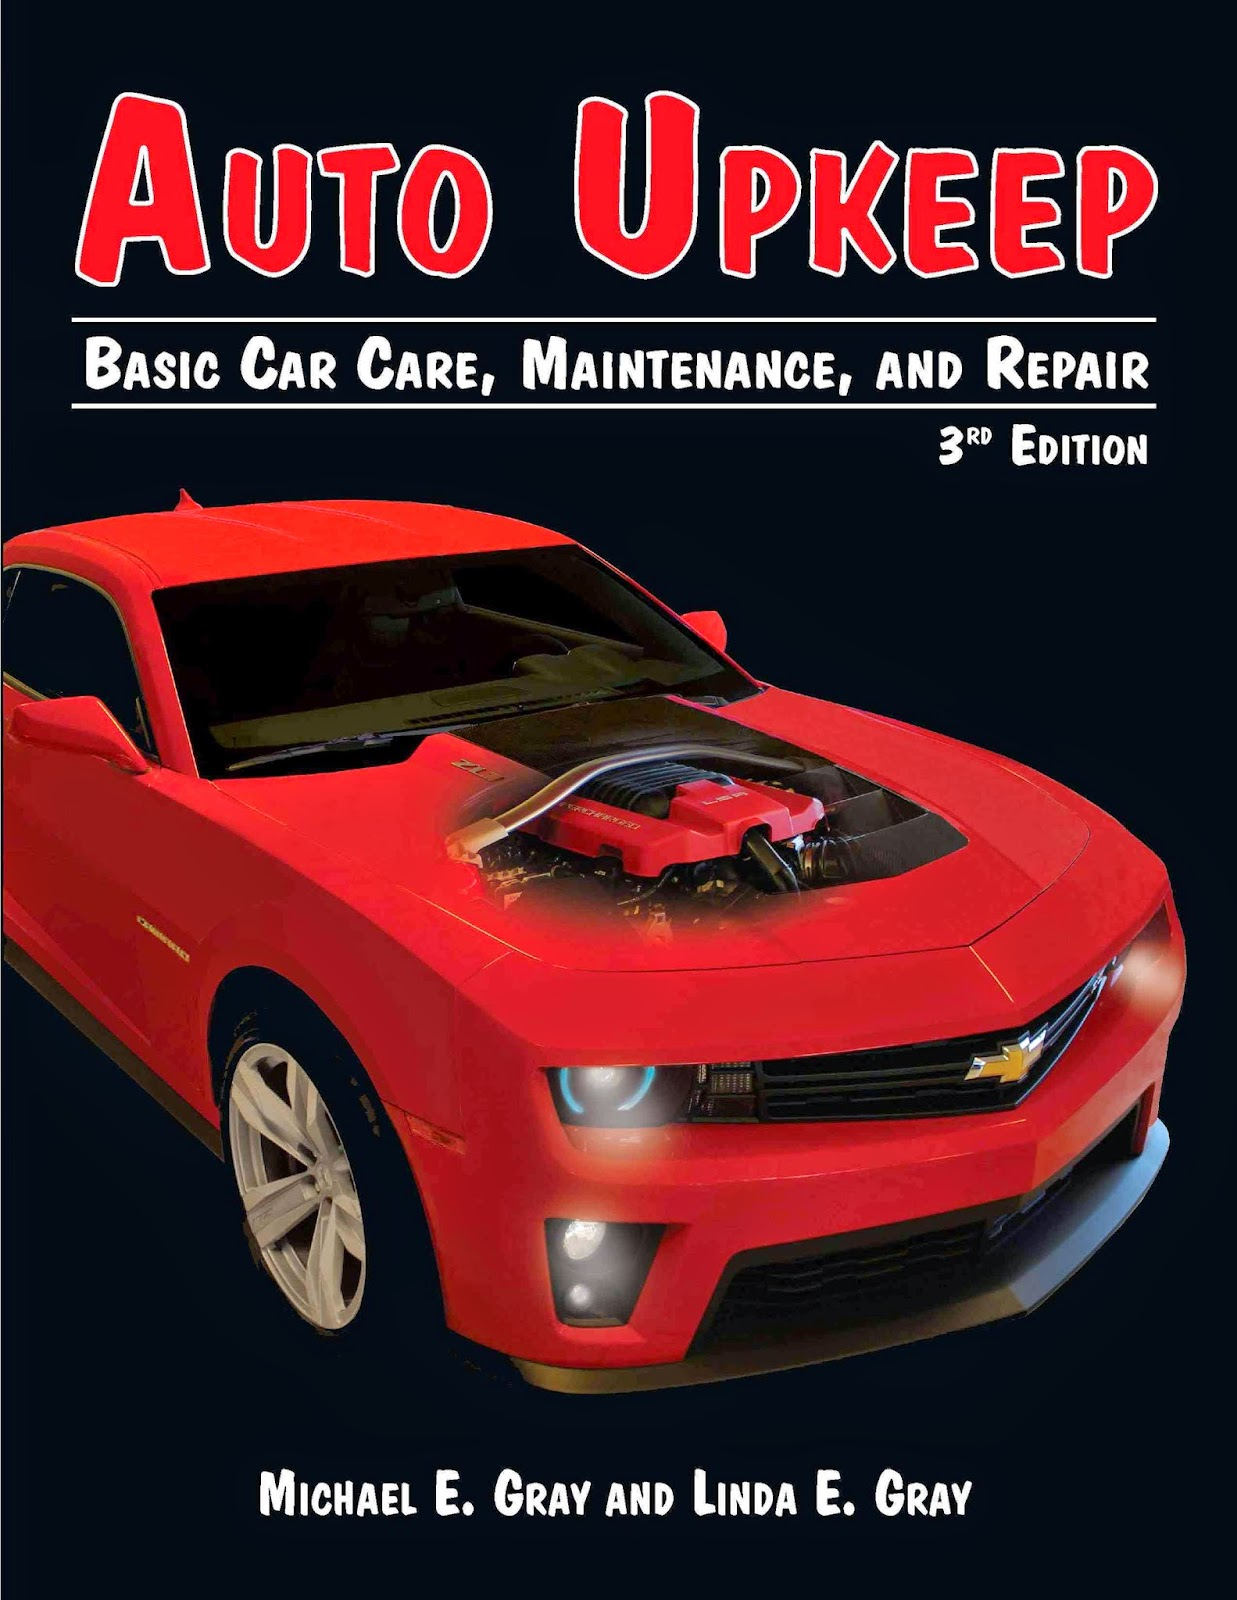 Buy Auto Upkeep car maitenance bookbook